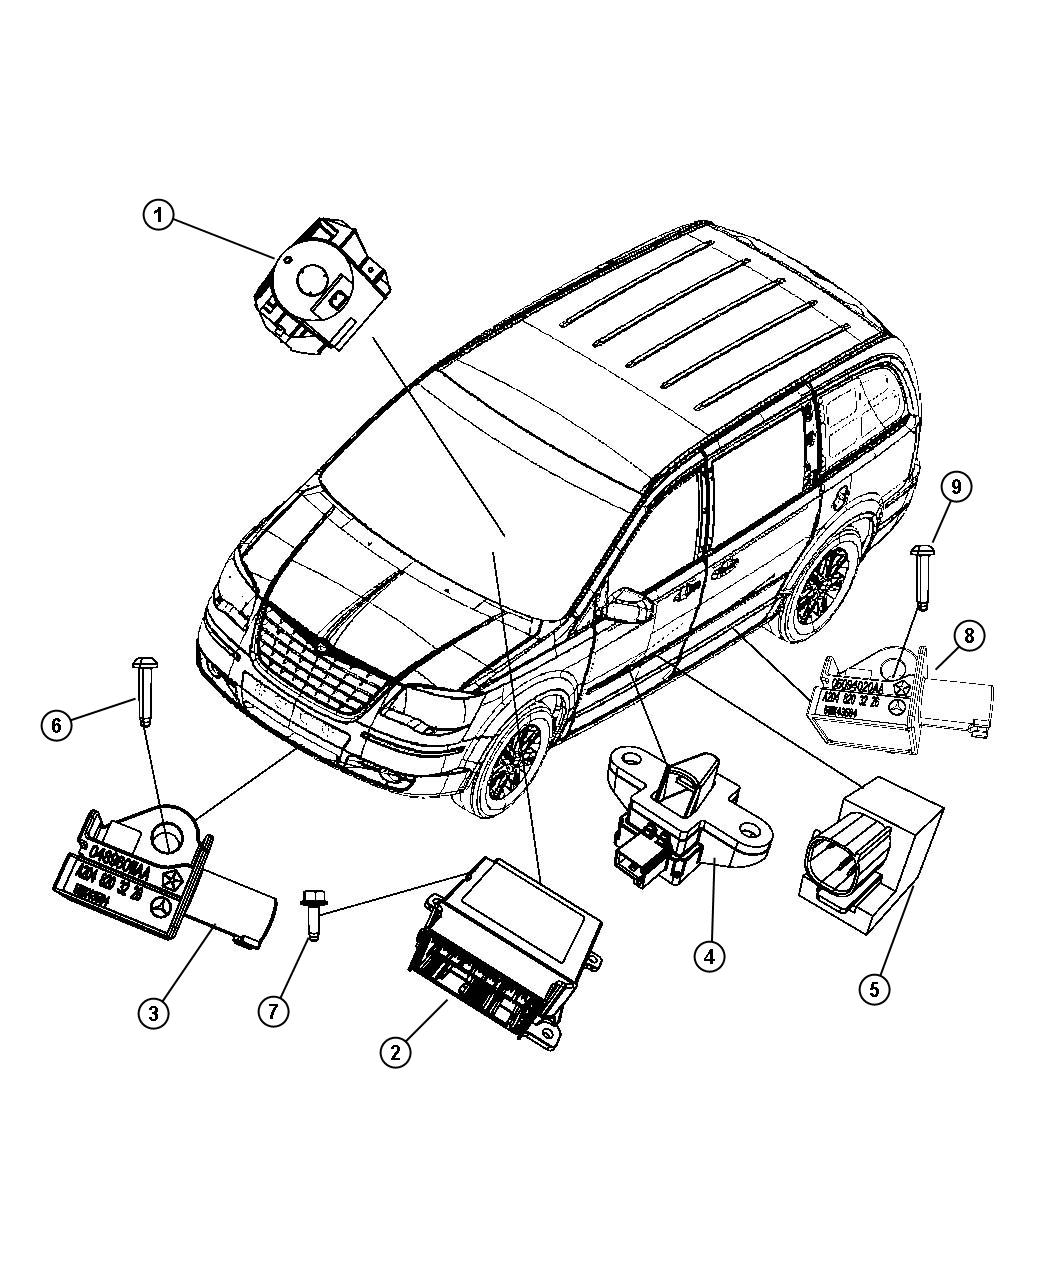 Diagram 2009 Dodge Grand Caravan Air Bag Wiring Diagram Full Version Hd Quality Wiring Diagram Diagramluf Mairiecellule Fr